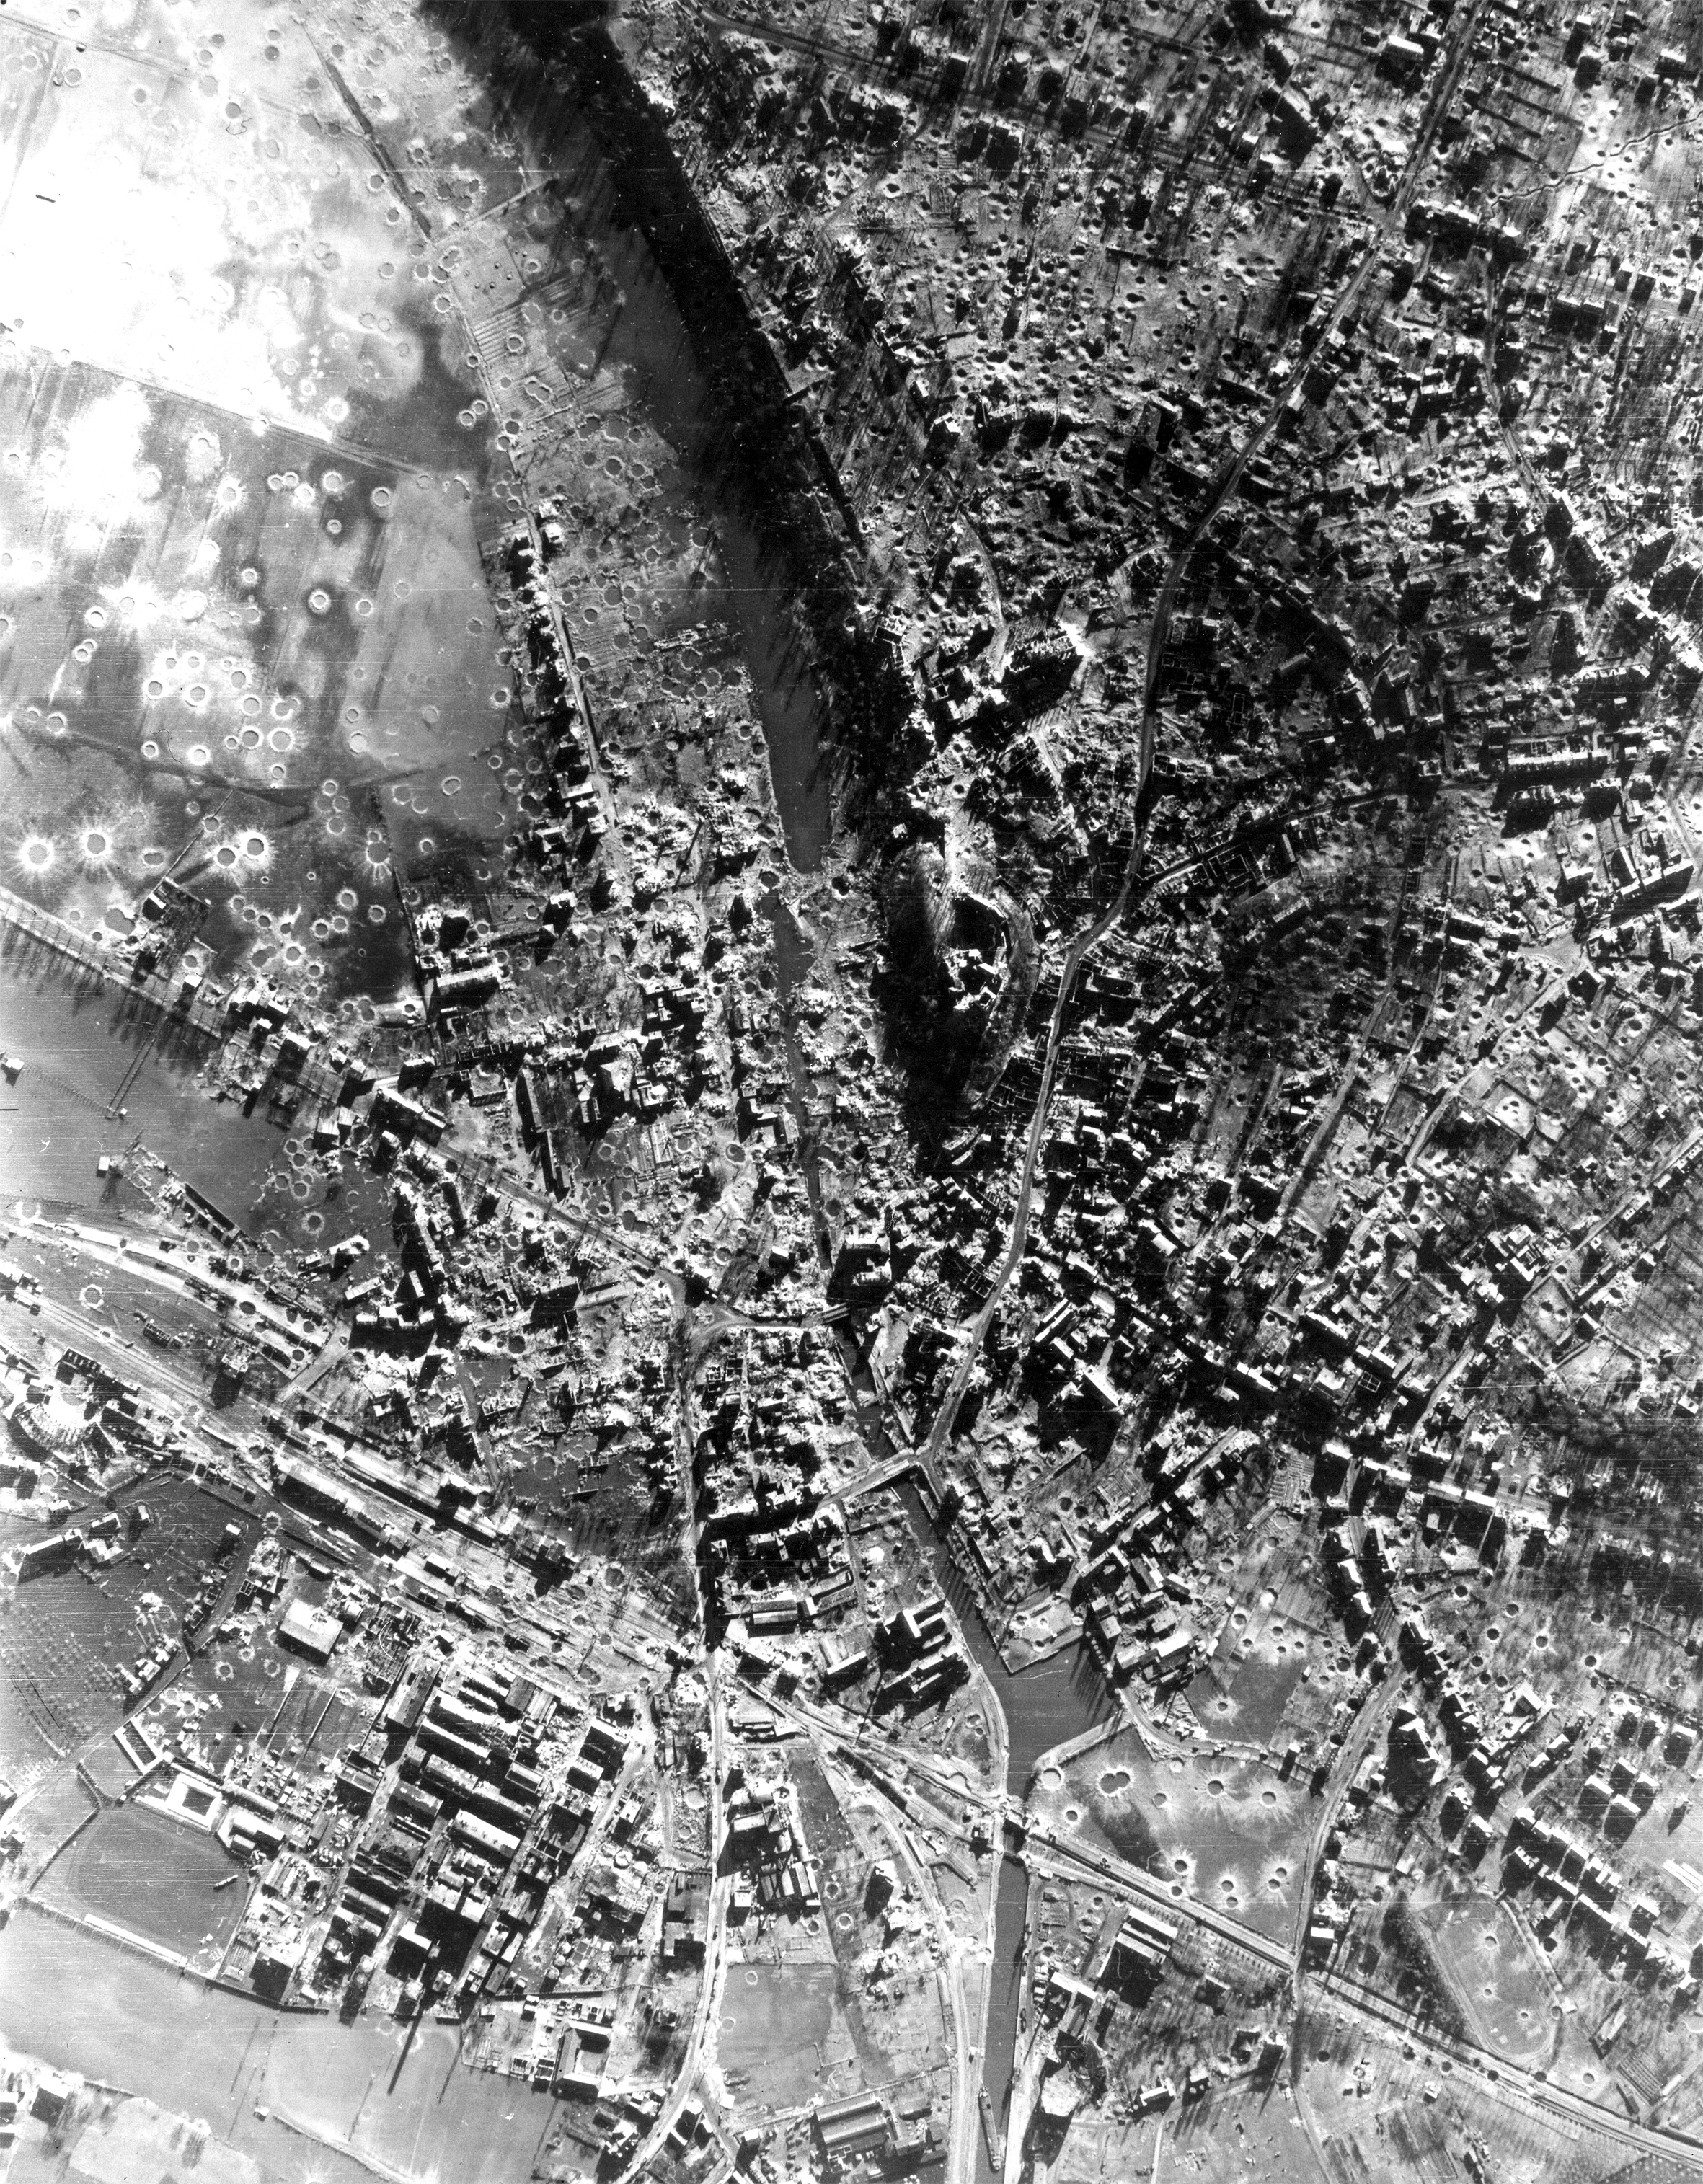 Kleve1945 aerial photograph with prison